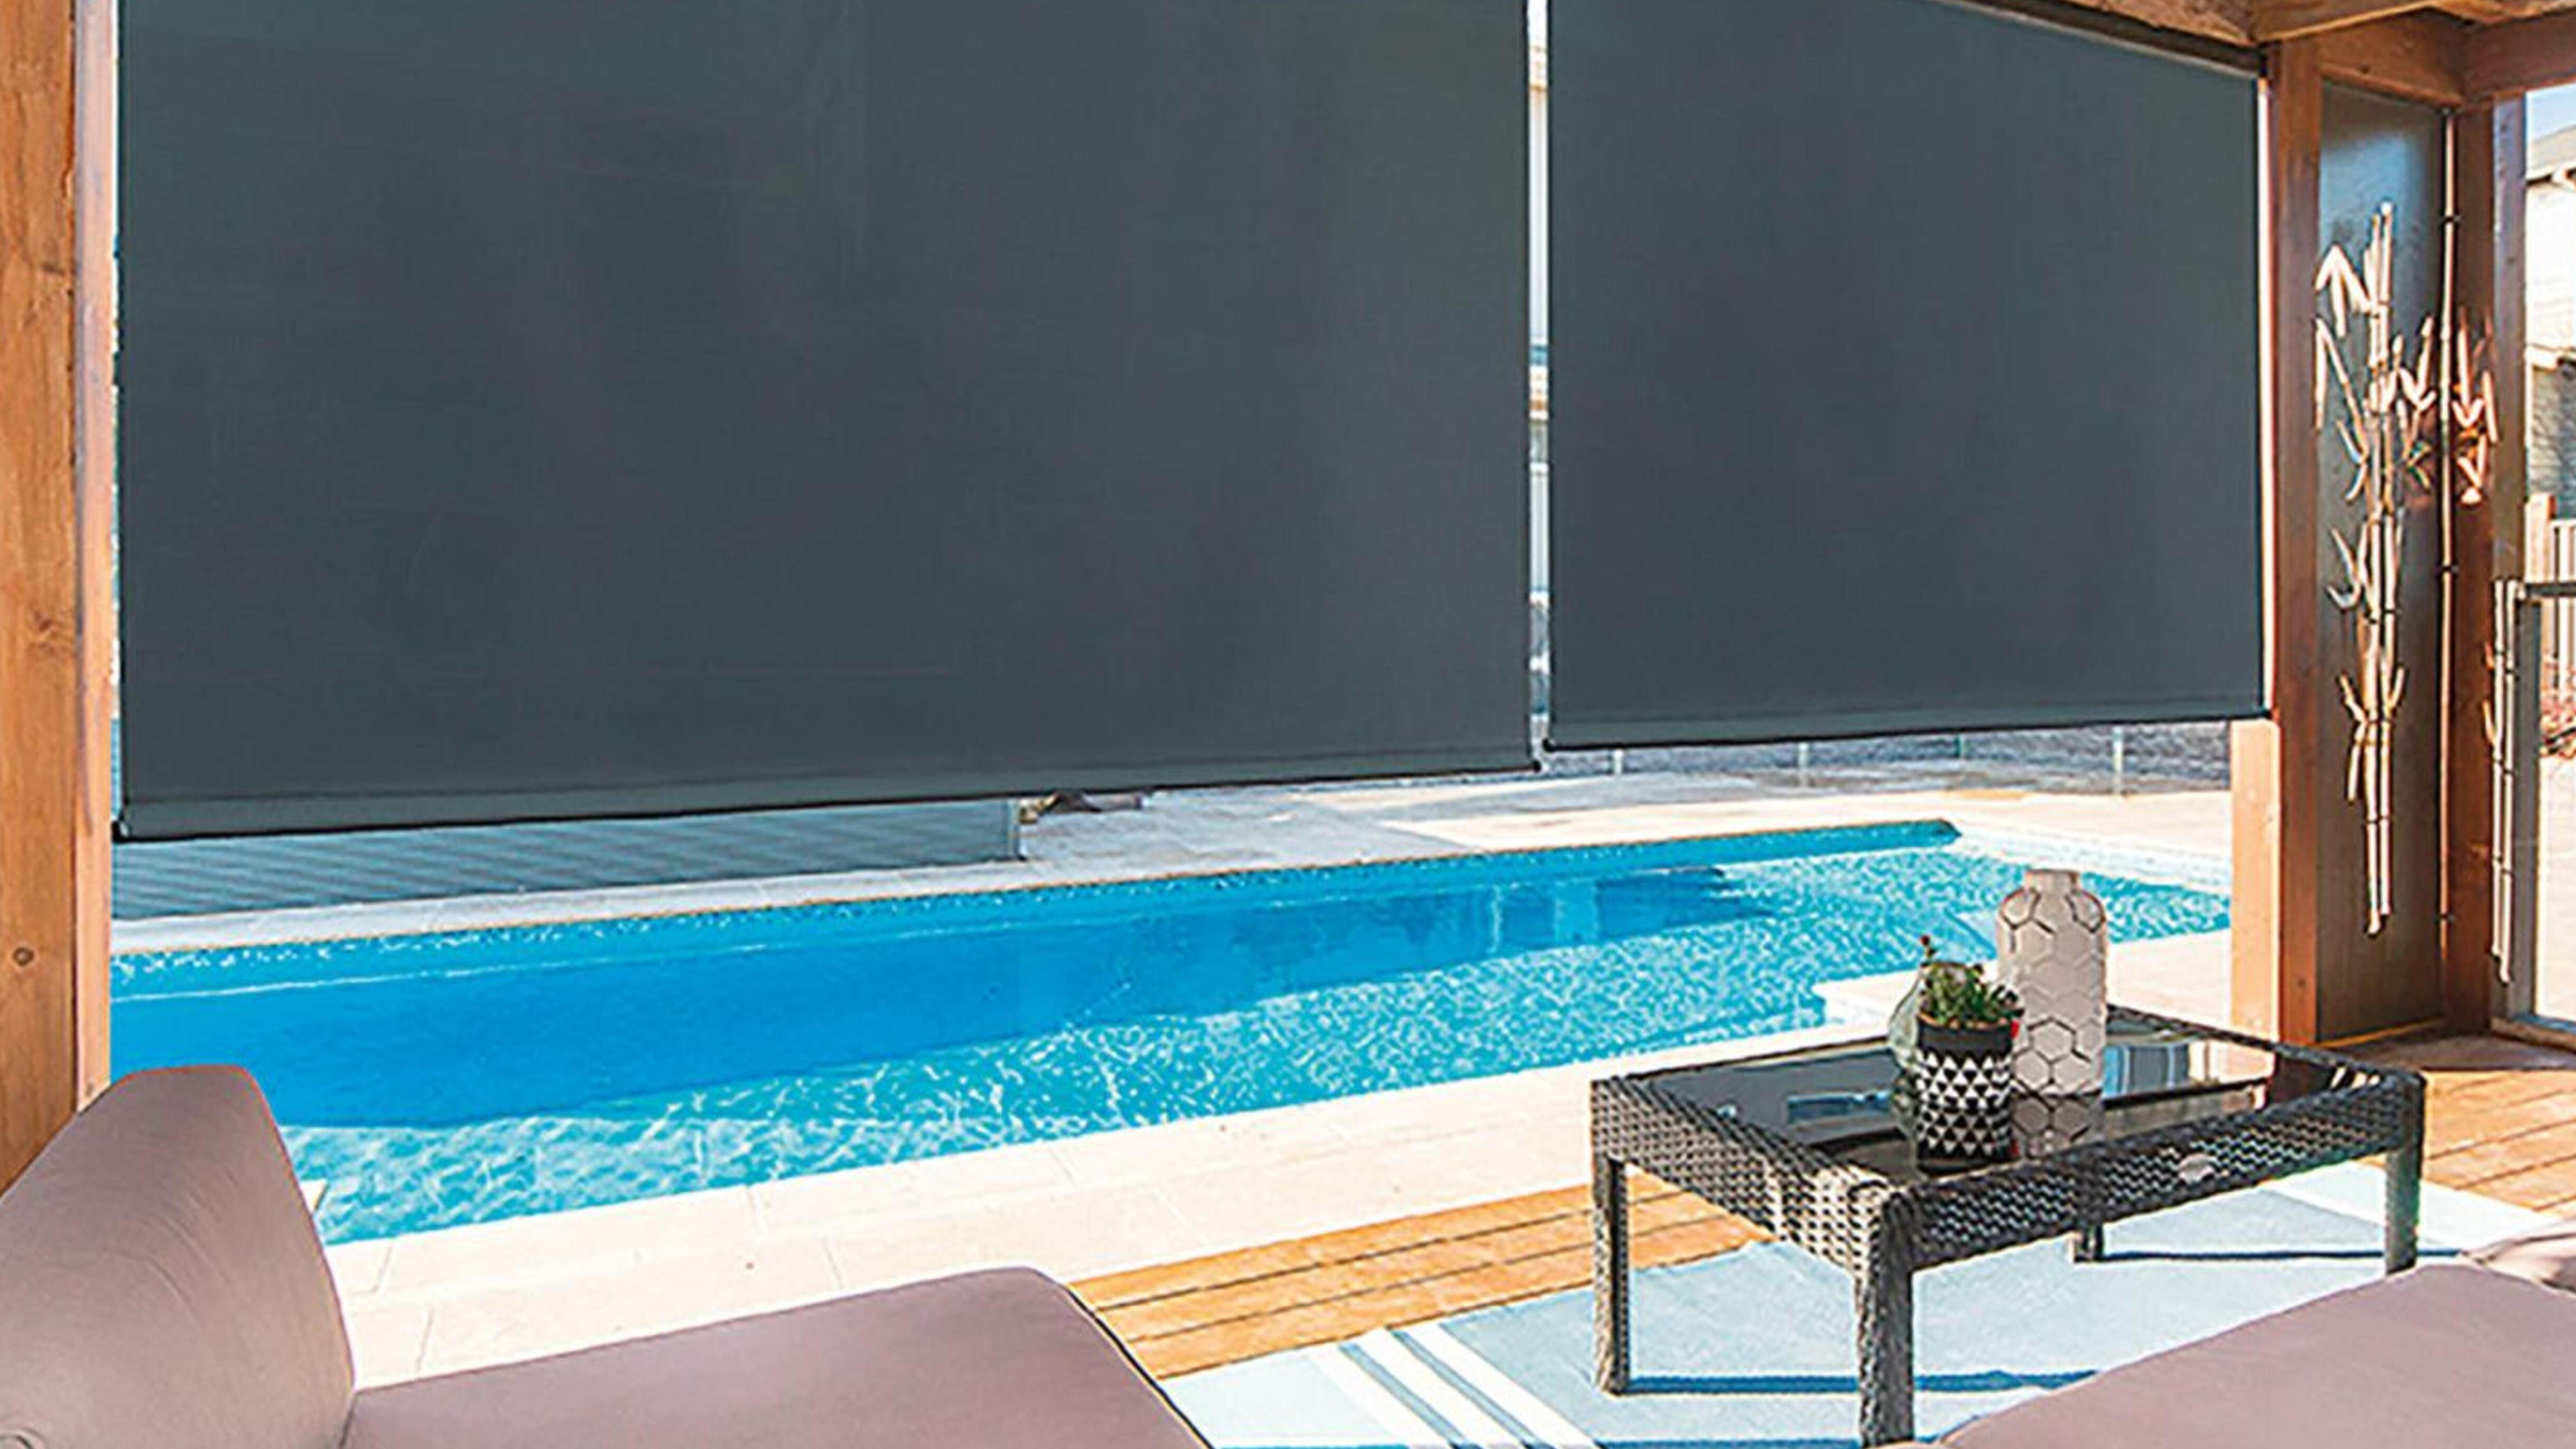 Timber decking by pool with a blind separating the decking area from the pool